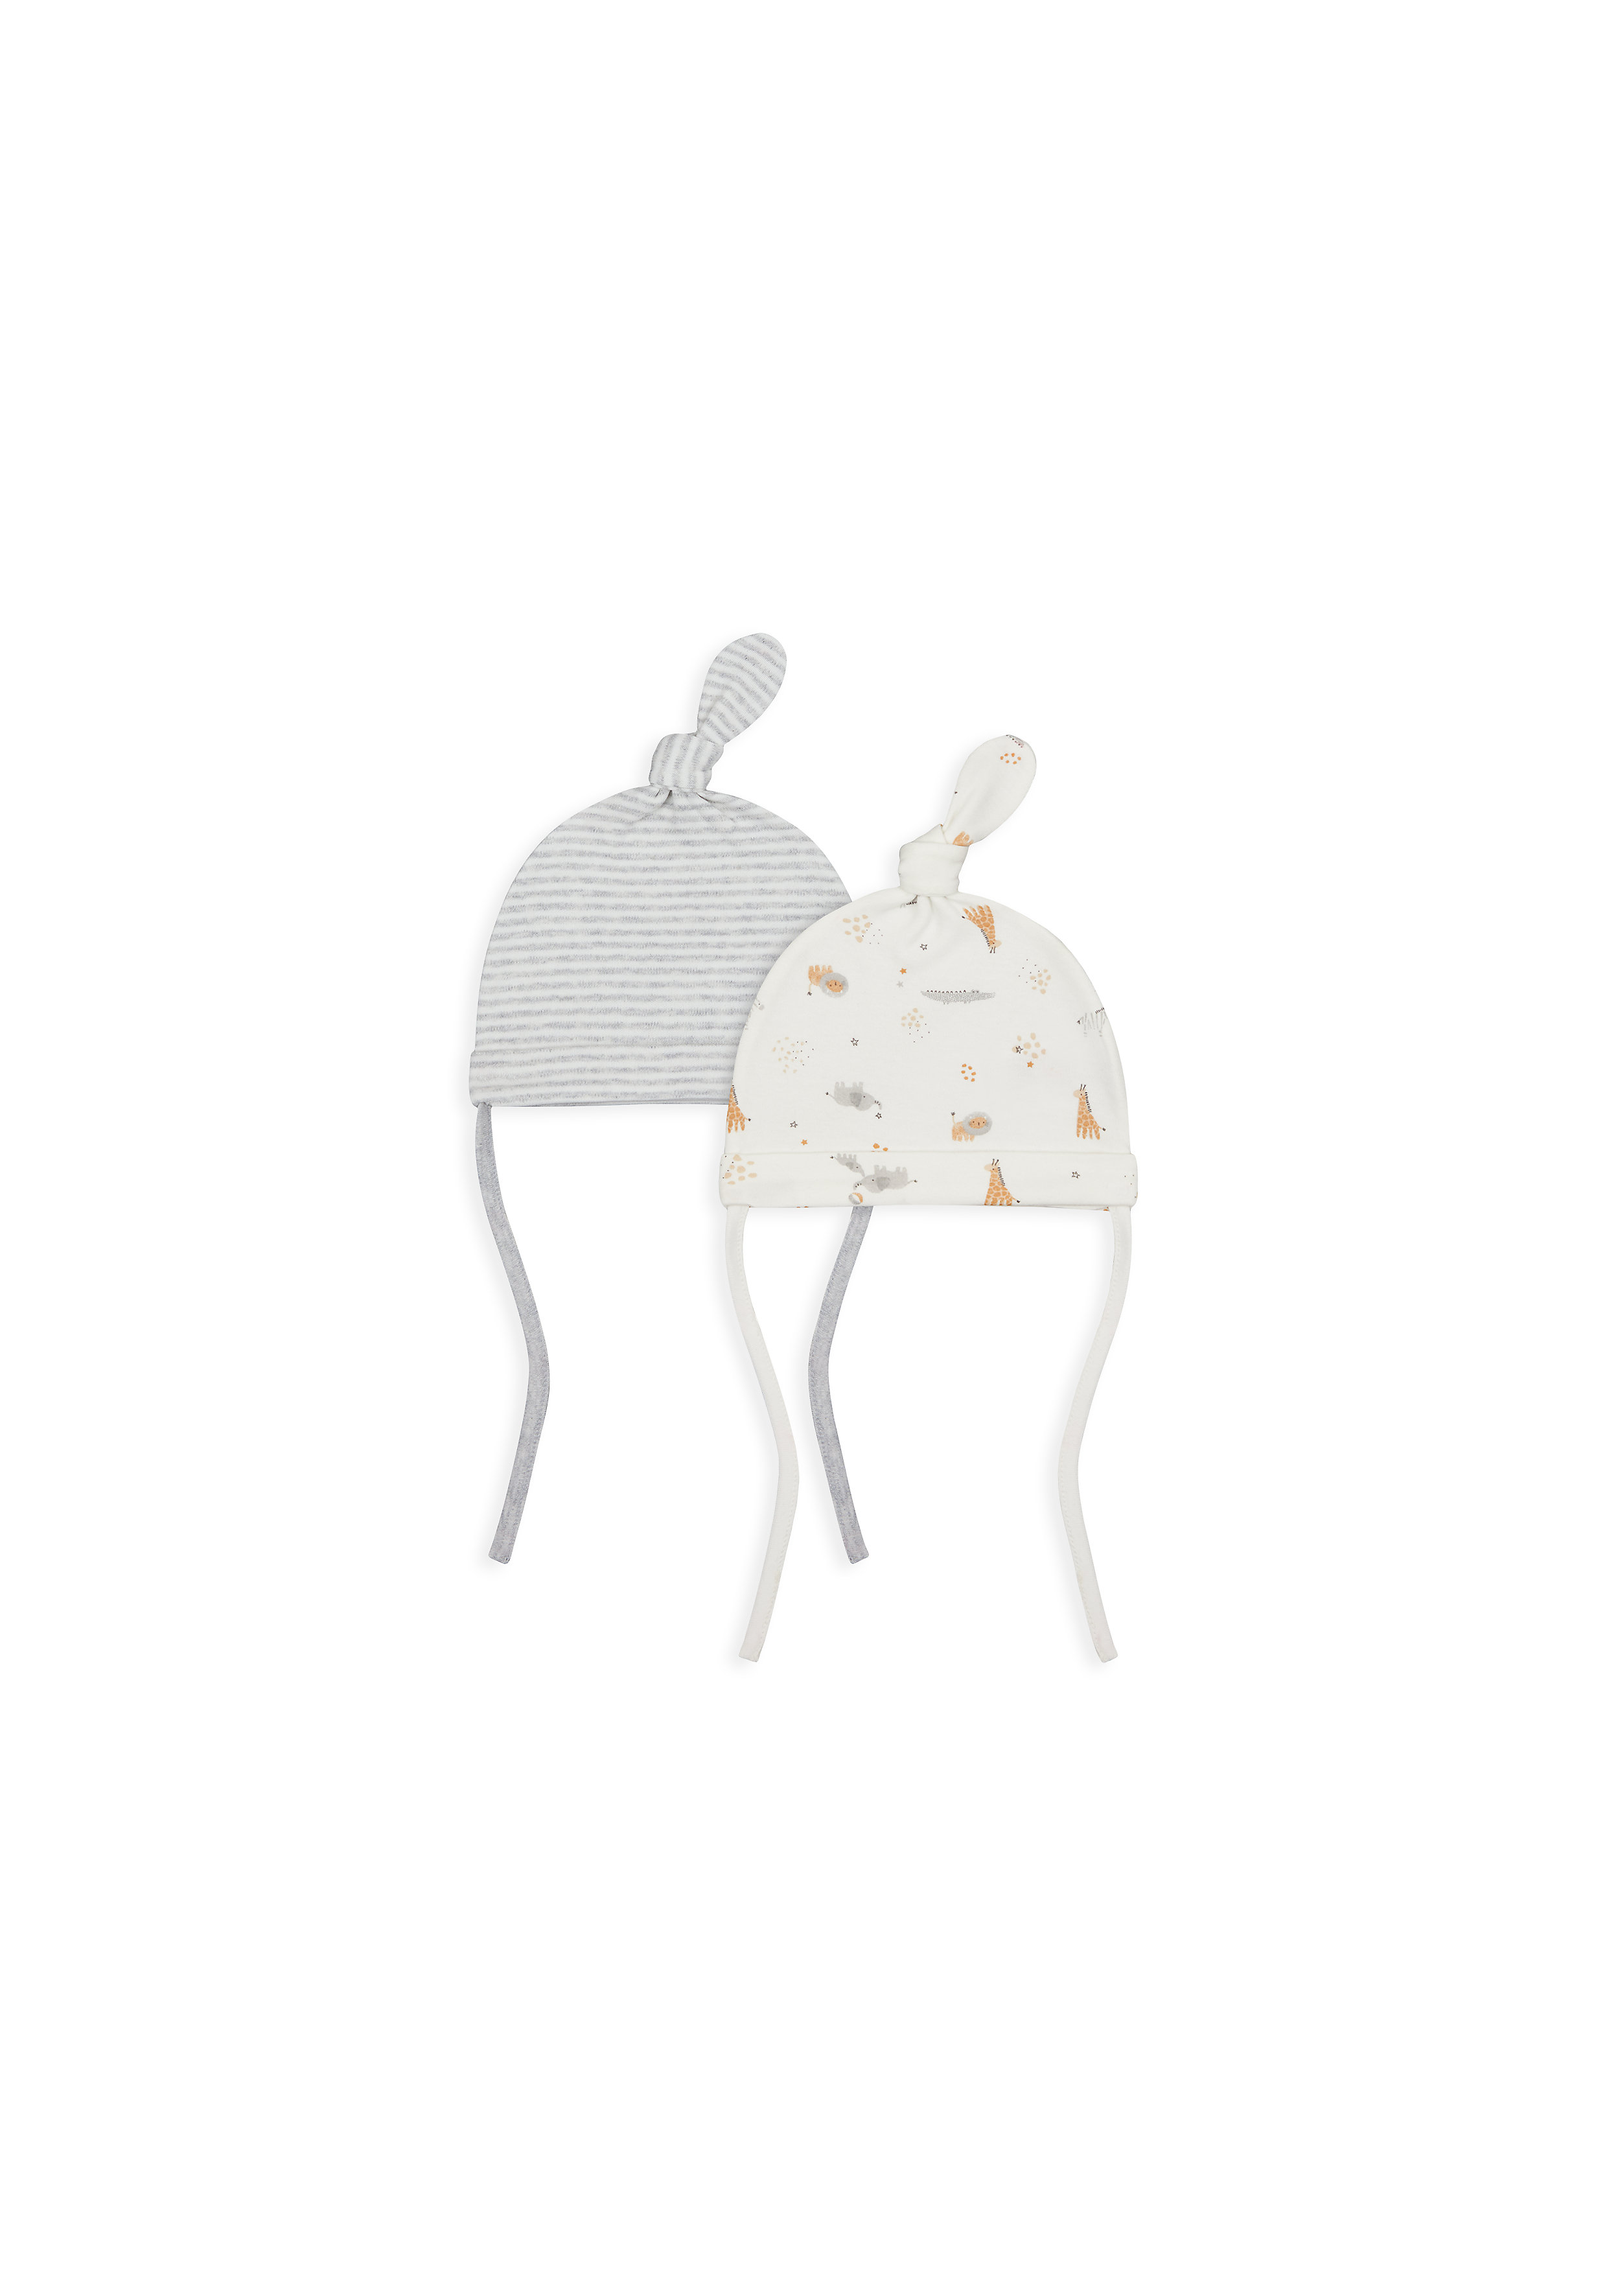 Mothercare | Unisex Hat Striped And Printed - Pack Of 2 - Grey & White